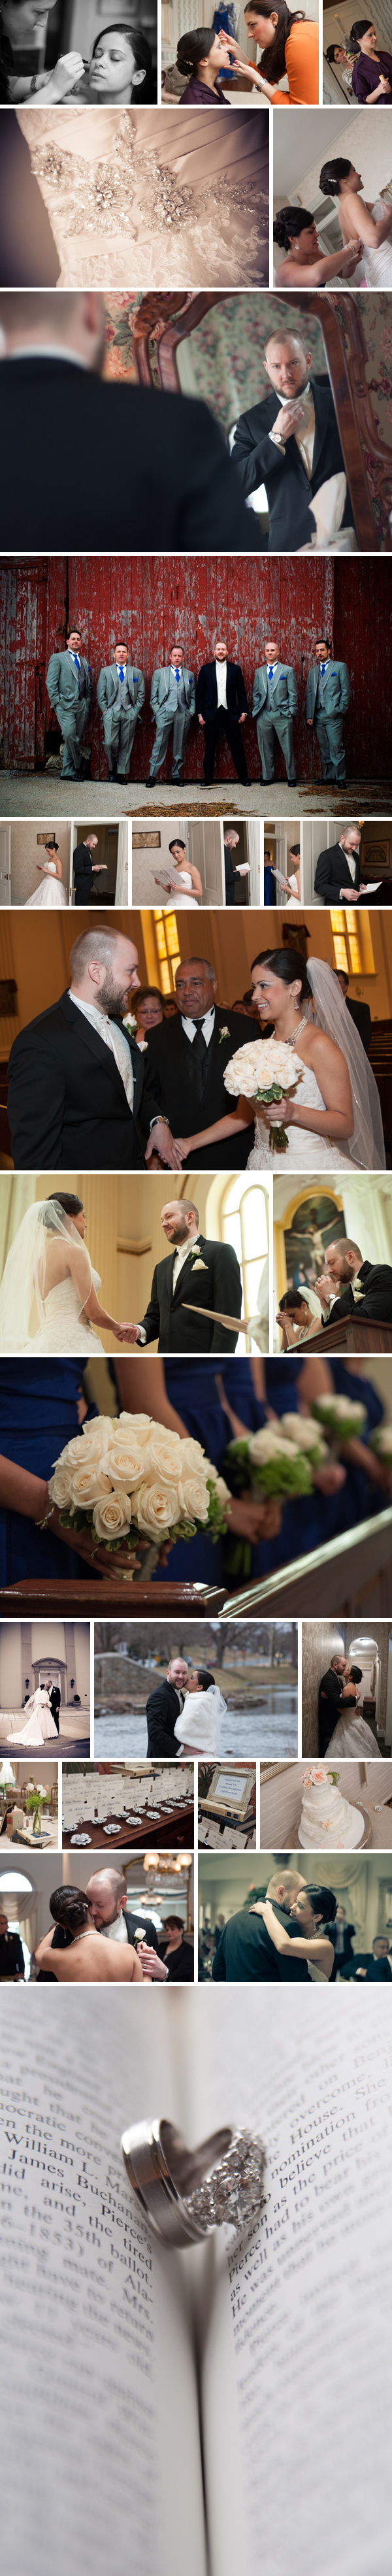 maryland wedding at Ceresville Mansion